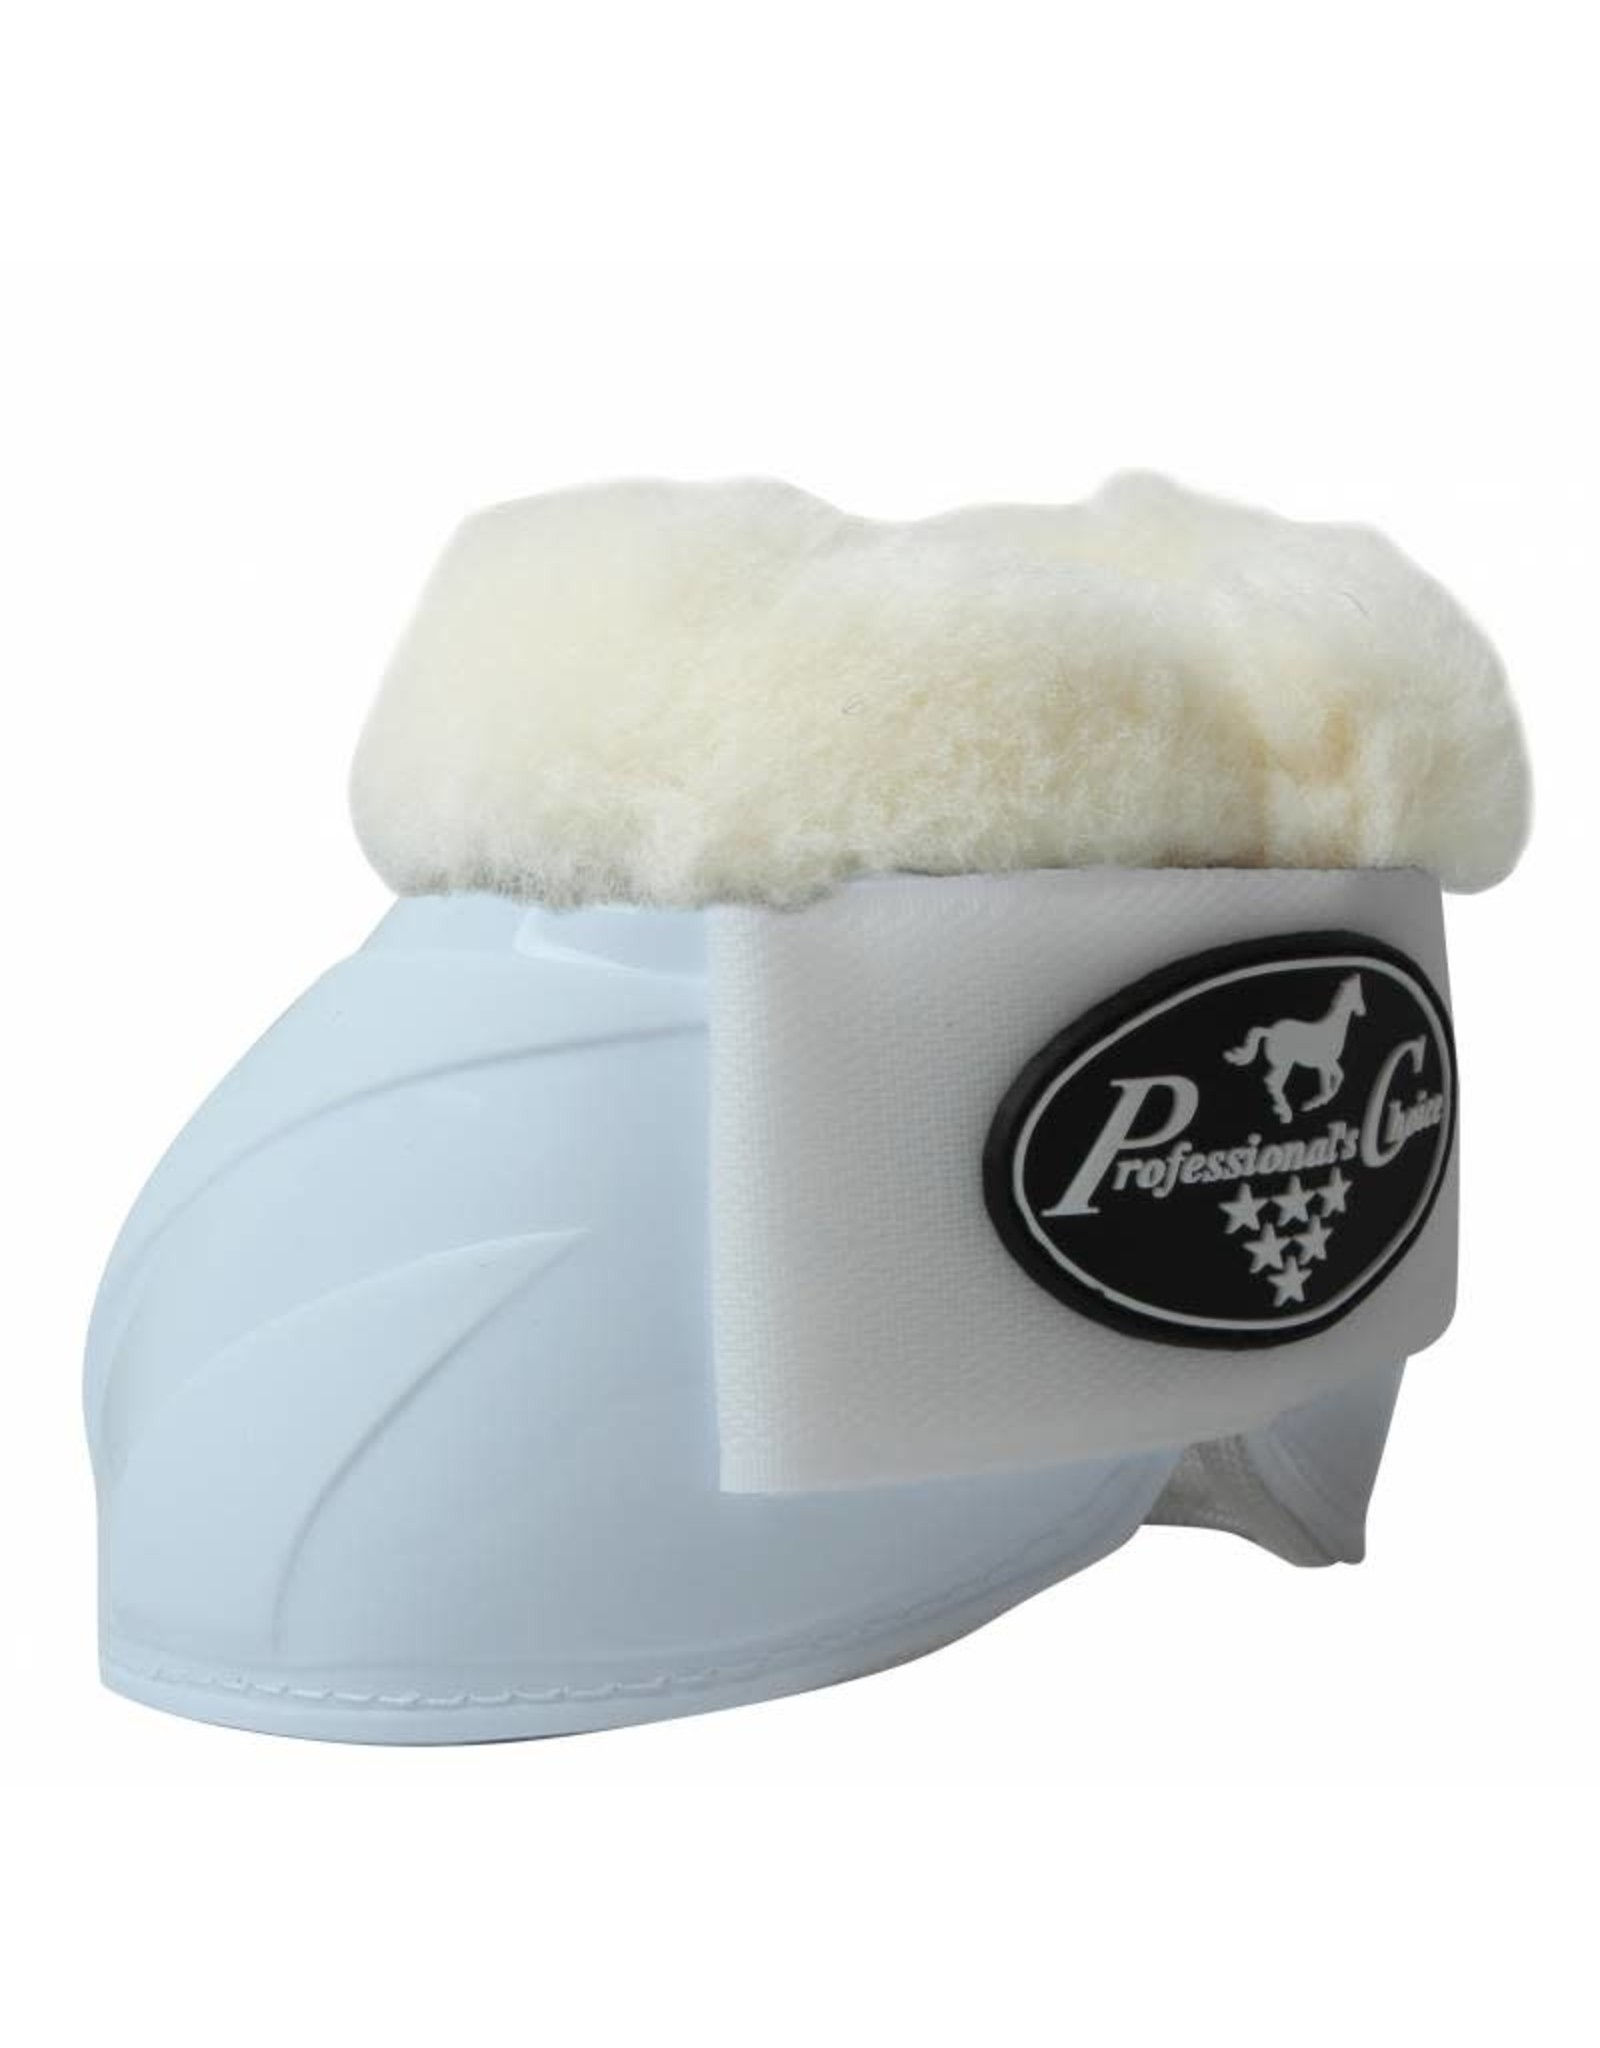 Bell Boots - SPARTAN ll w/ Fleece - Large - White - #BBF563-WHI